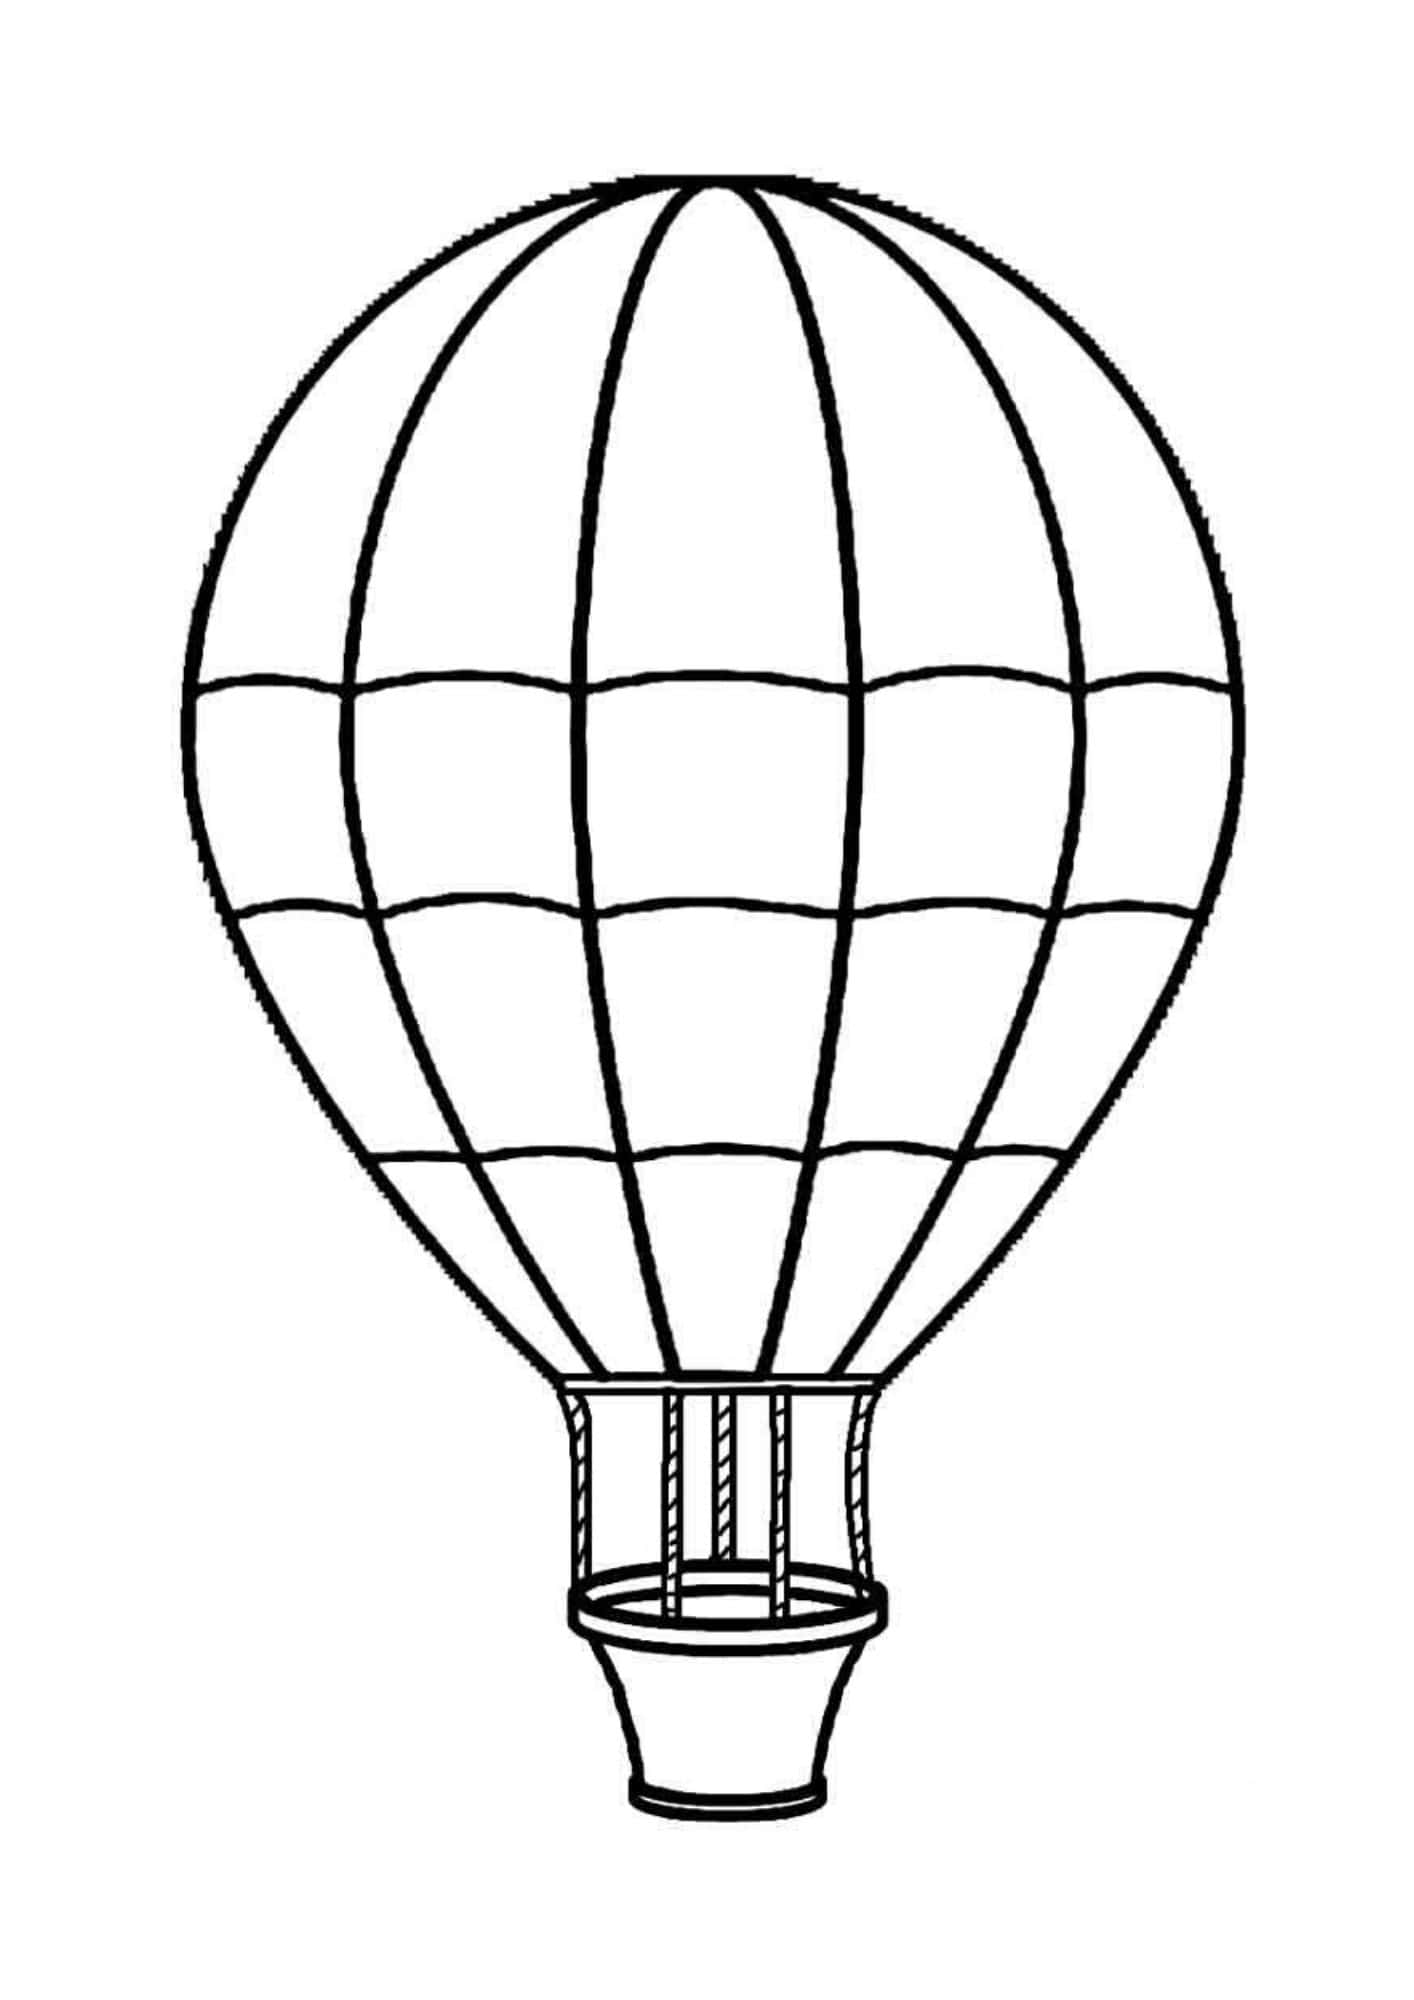 sketch of a balloon drawing balloon royalty balloons png black and white png a sketch of balloon